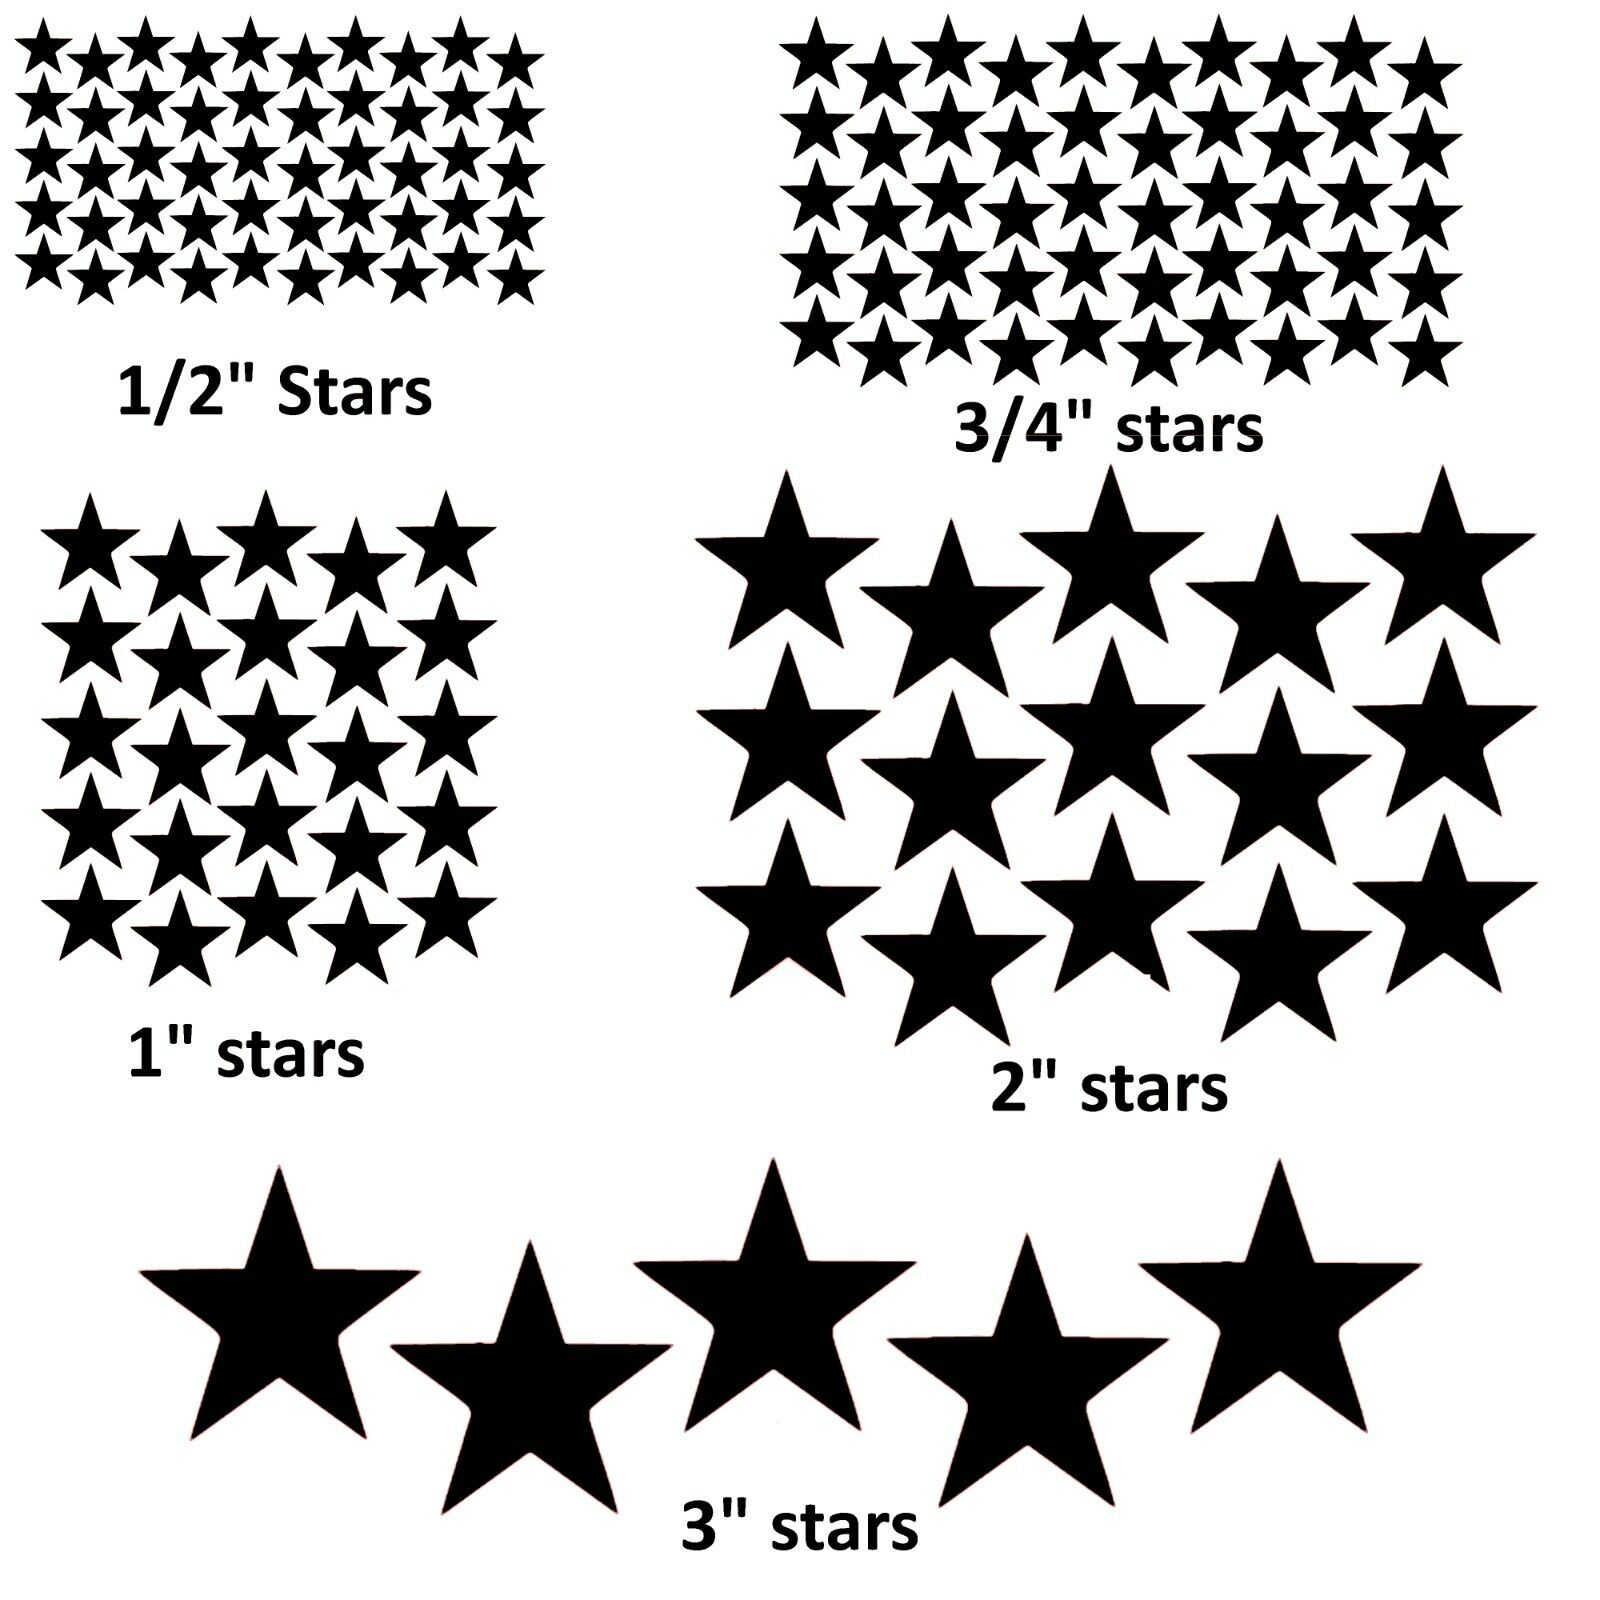 Home Decoration - Star stickers! Pick your size and color! Permanent outdoor glossy vinyl decals.